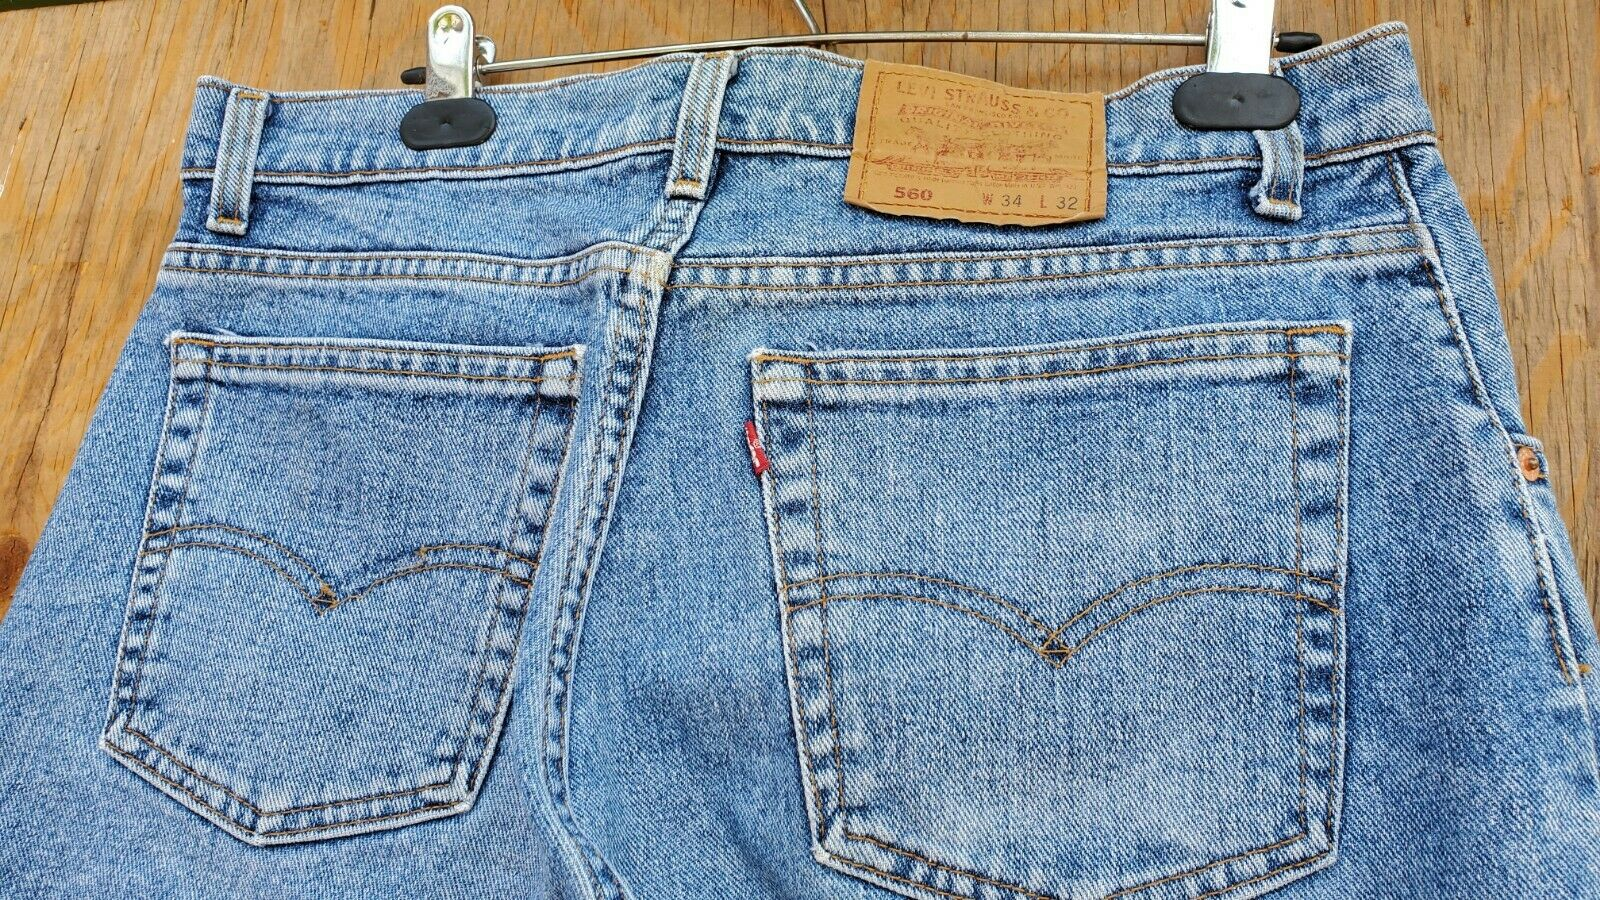 levis 560 34x32.made In Usa - image 3